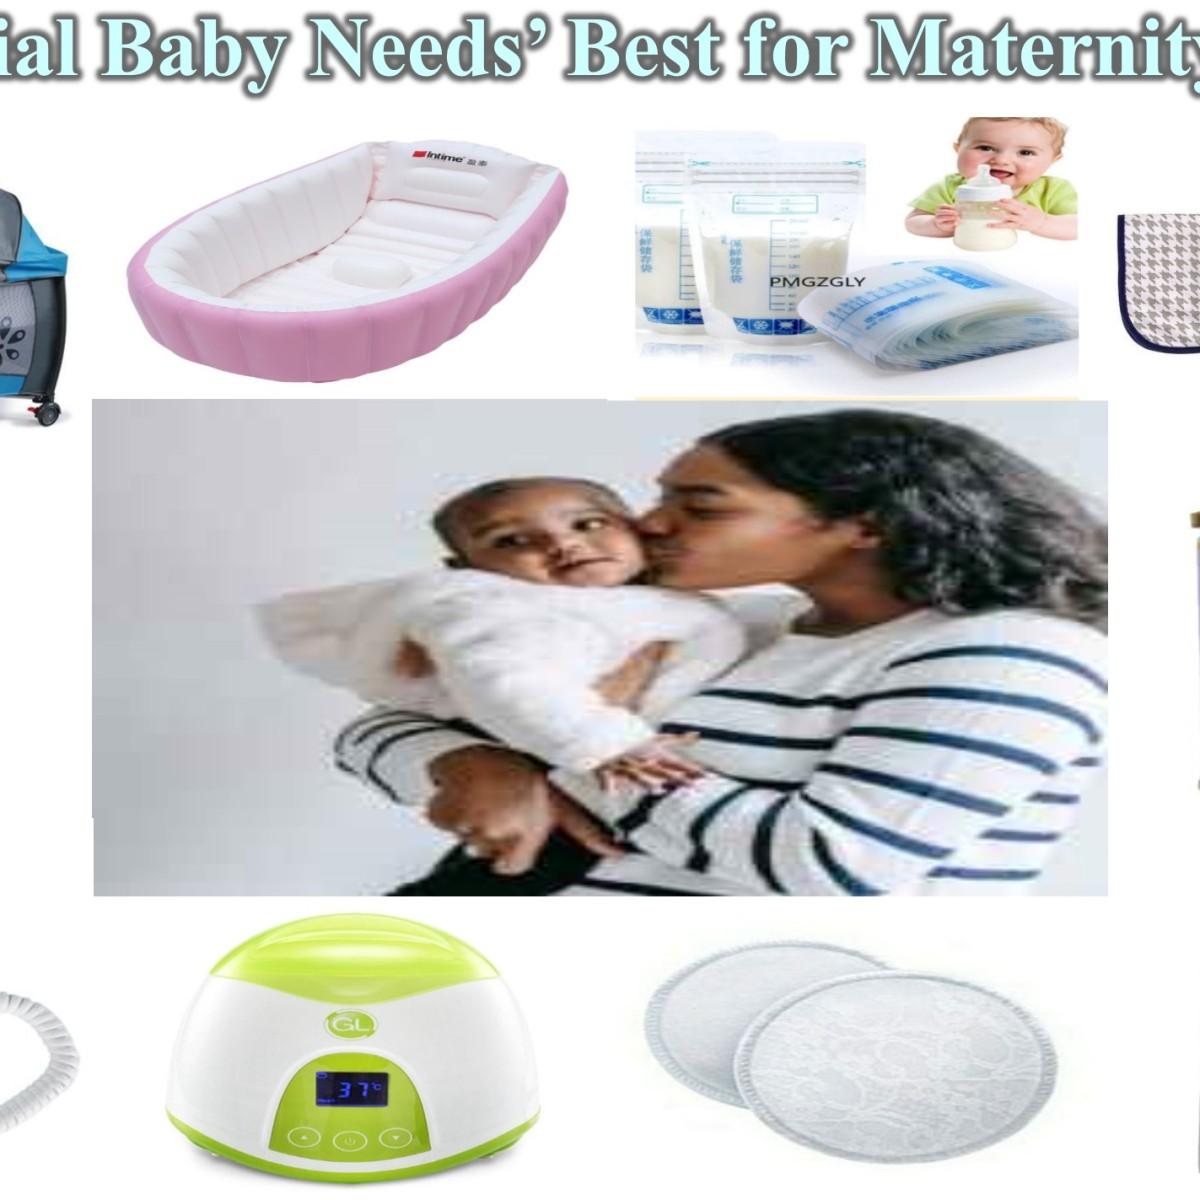 Essential Baby Needs: Best Care Experience for Maternity and Newborn Baby'